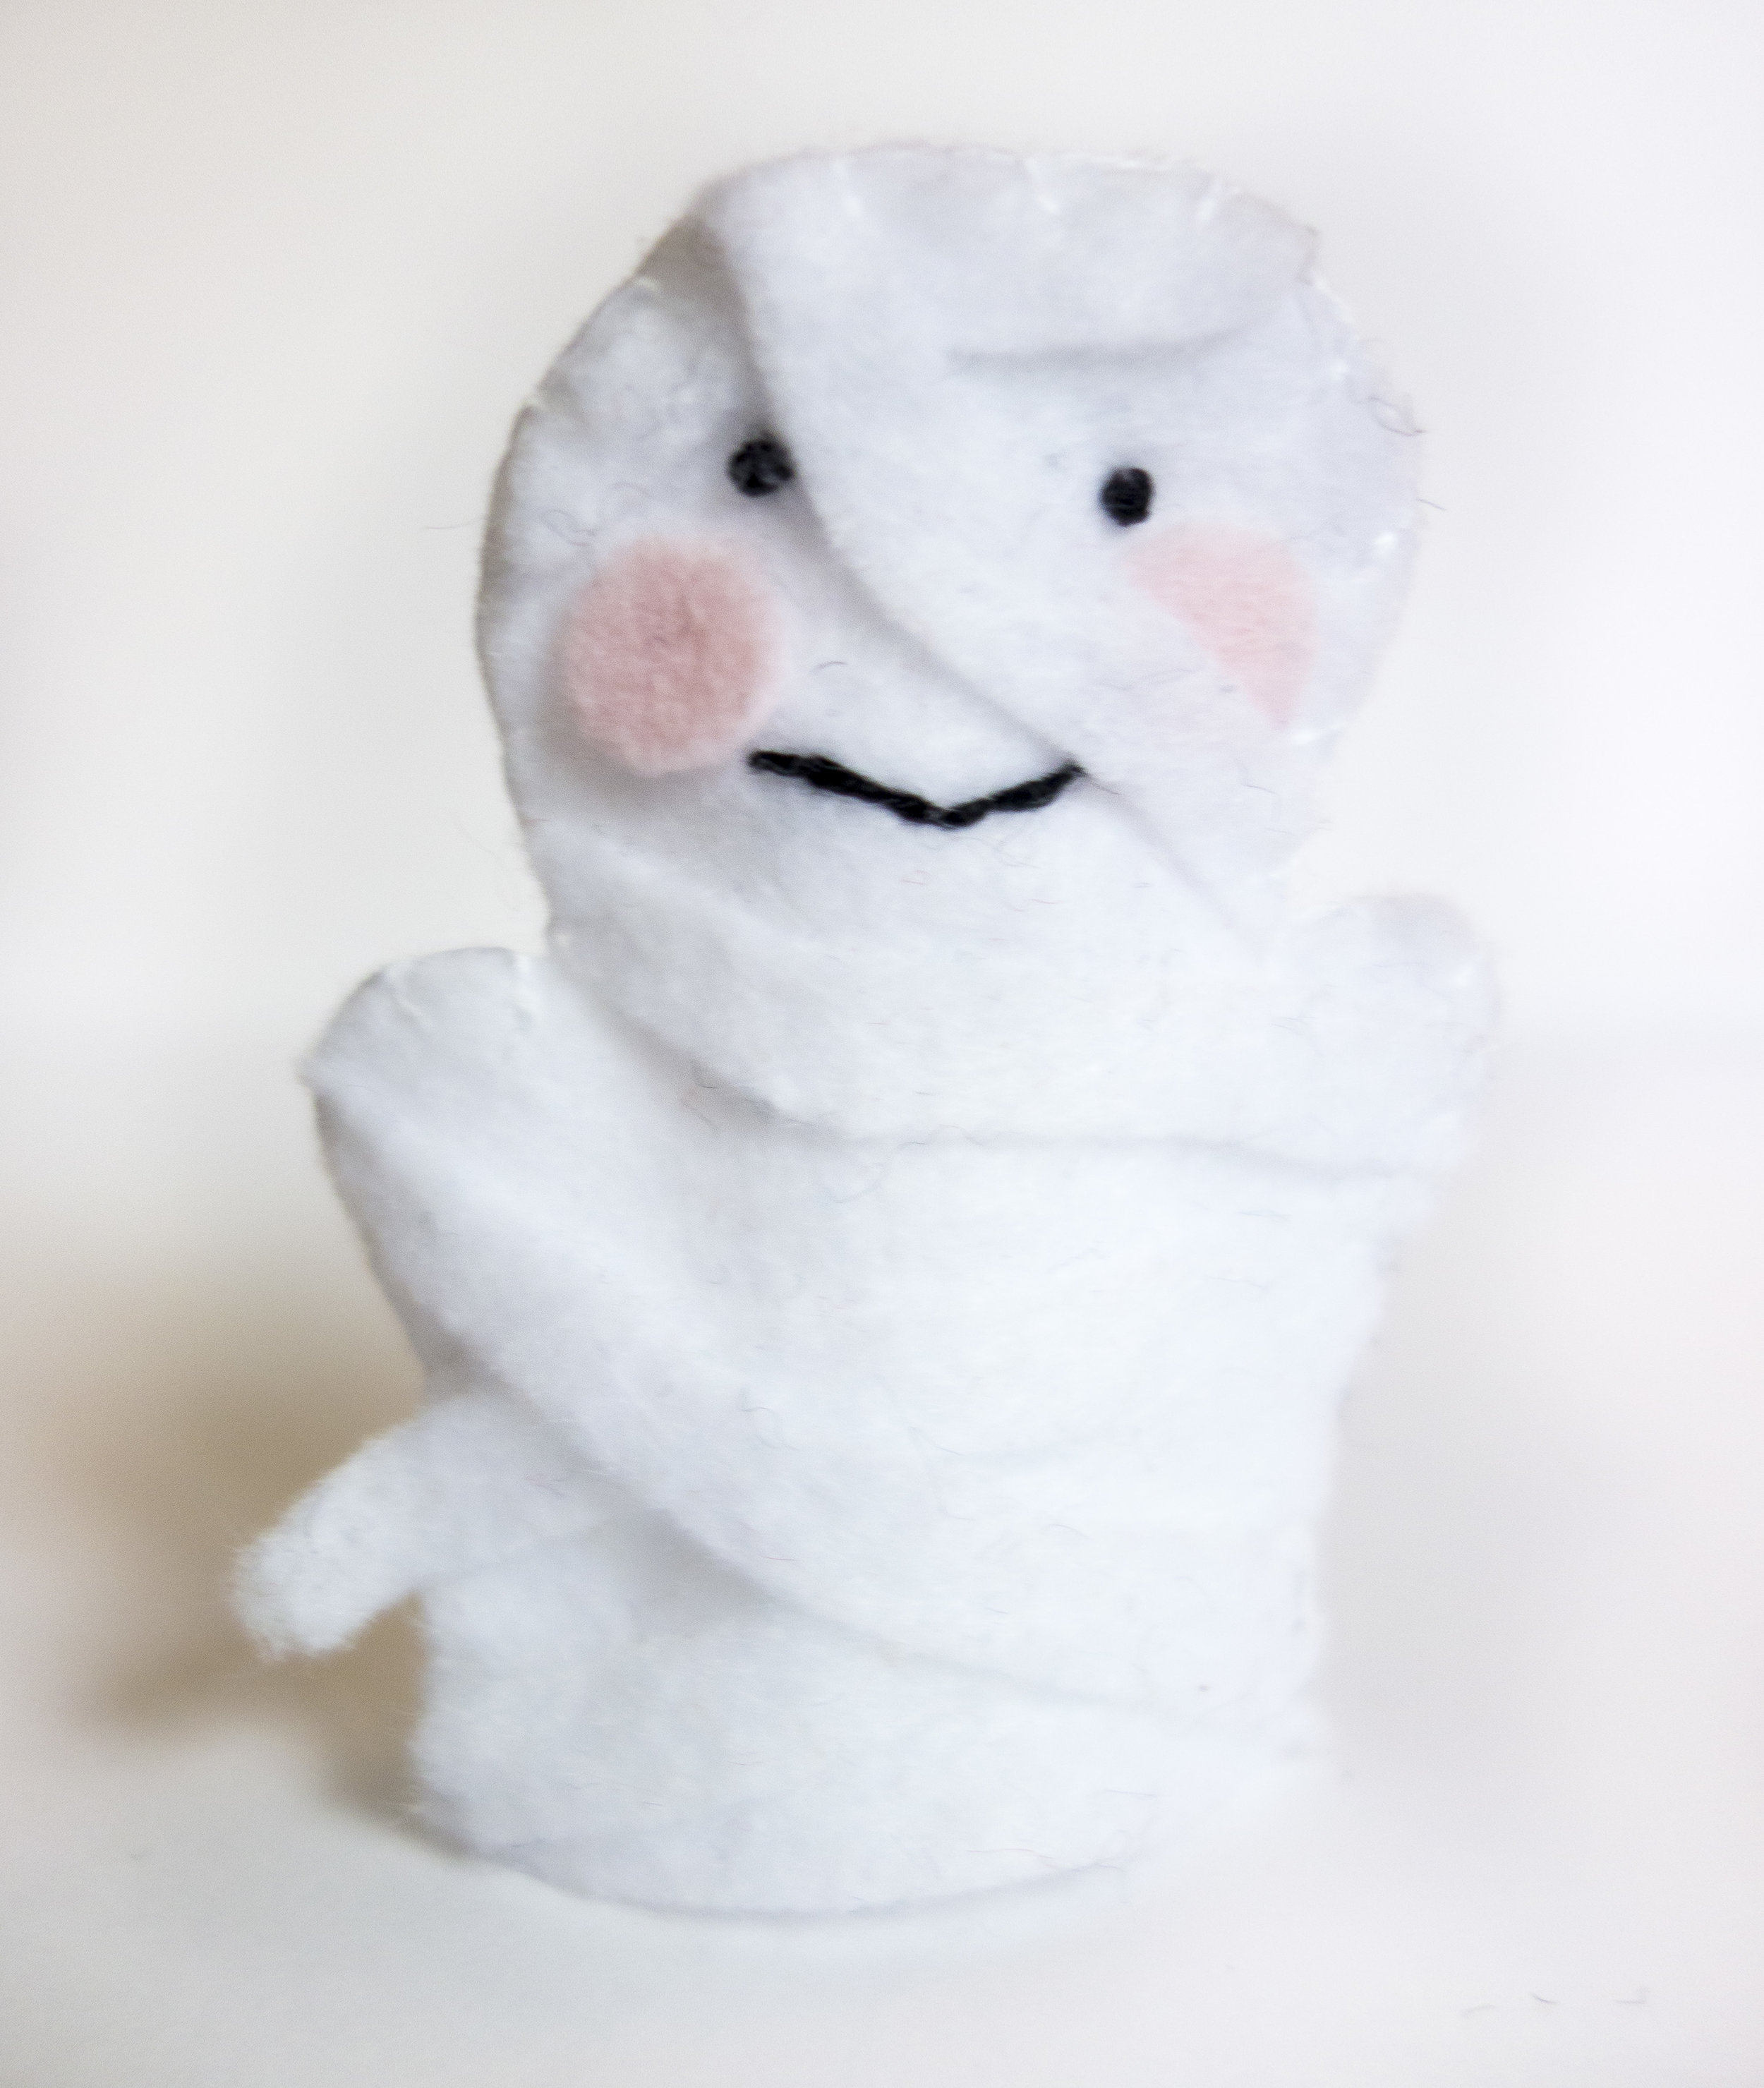 Mummy - After gluing on cheeks and making french knot eyes, I used one long strip of white and trimmed it as I arranged it in overlapping layers.